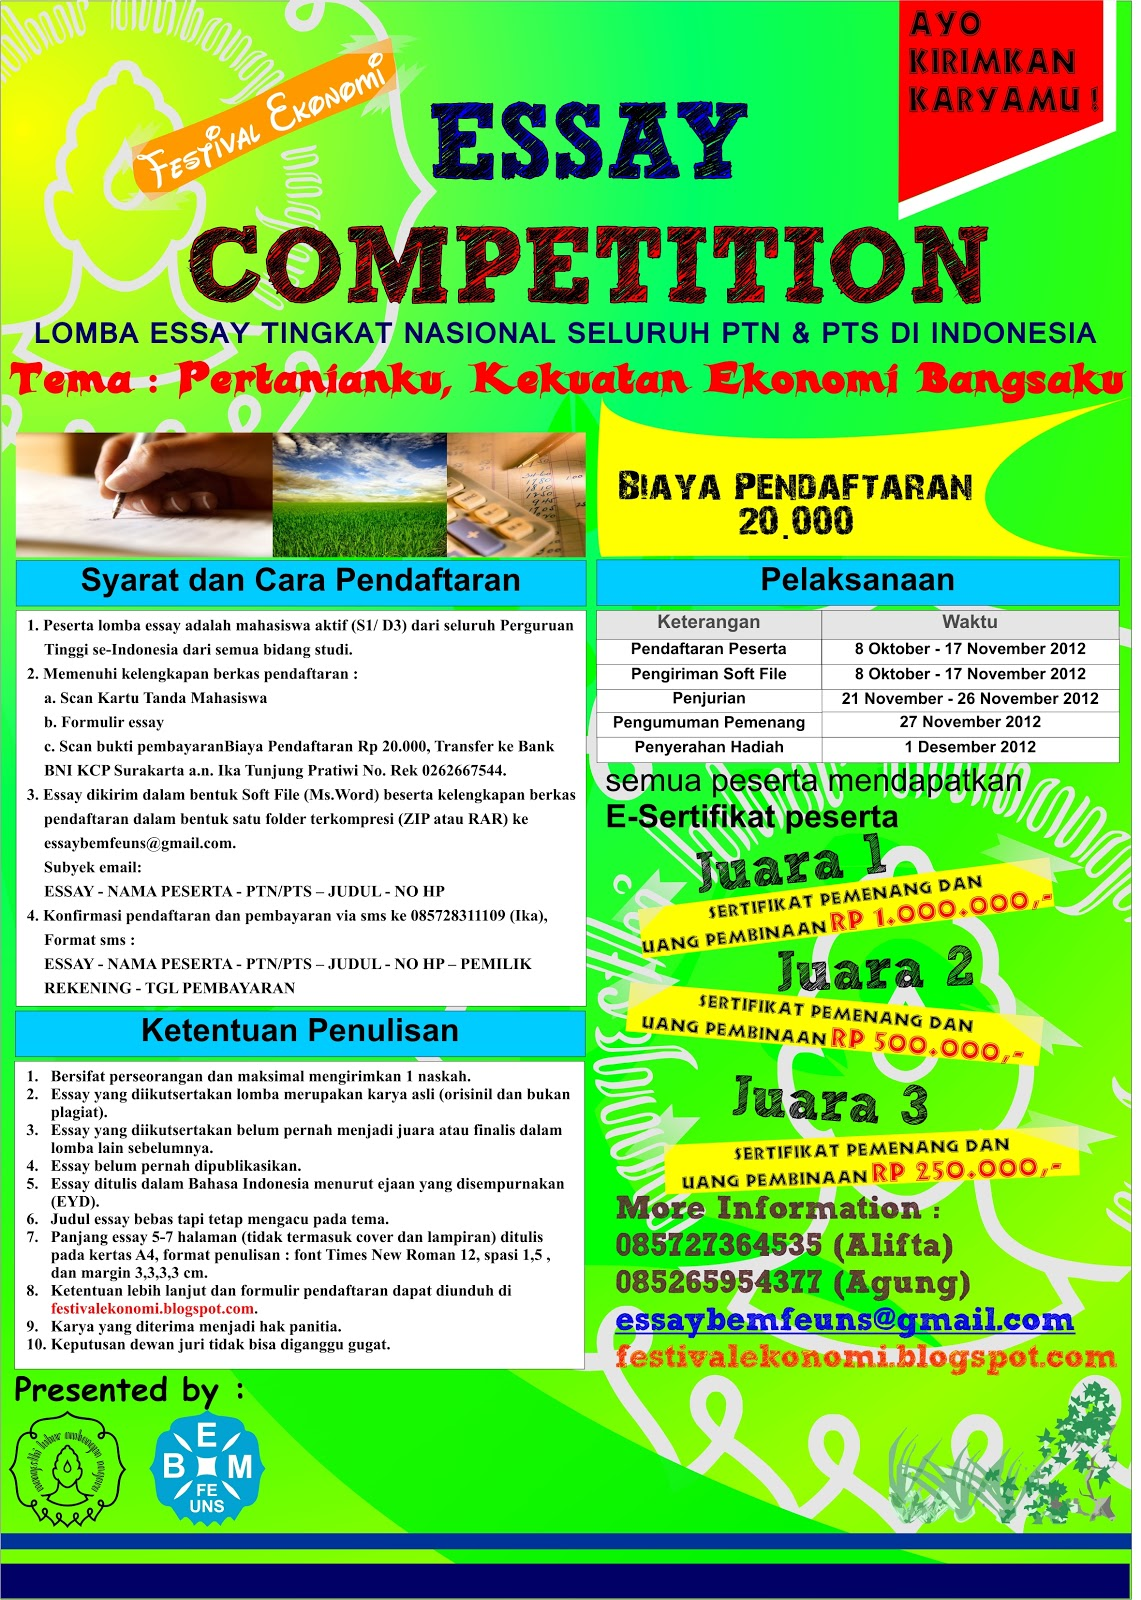 Master thesis competition contest